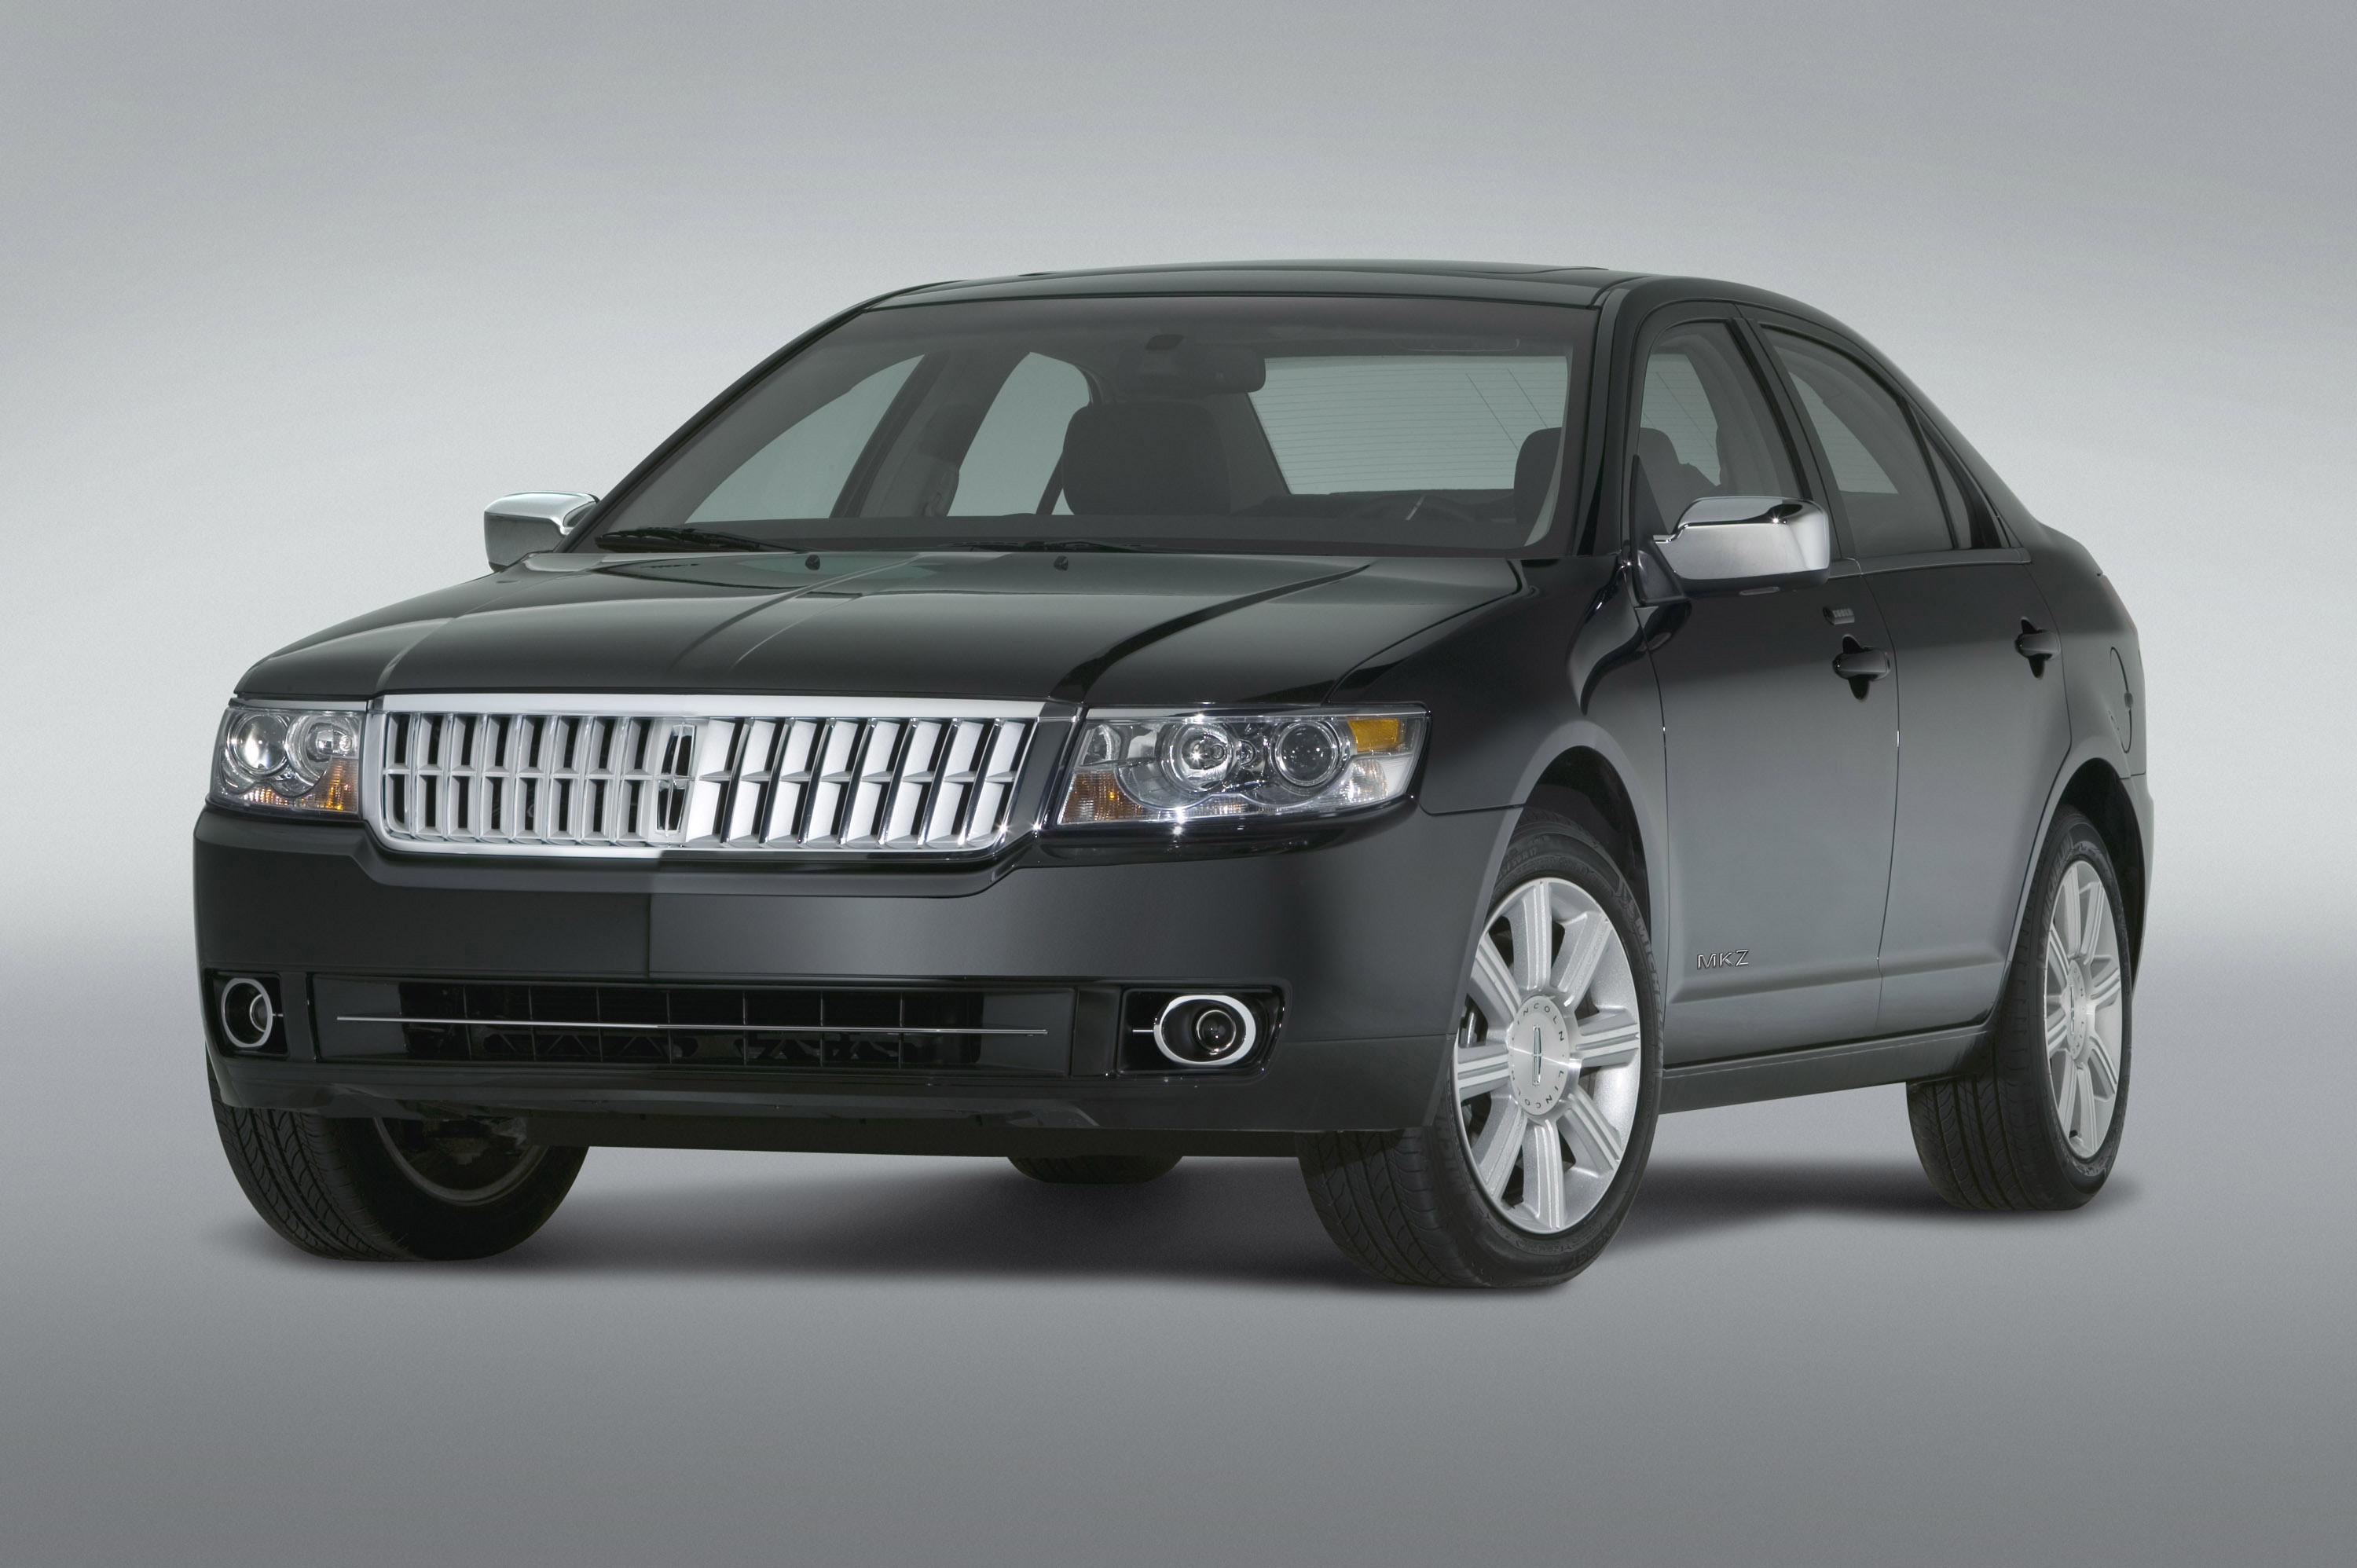 2007 lincoln mkz review top speed. Black Bedroom Furniture Sets. Home Design Ideas